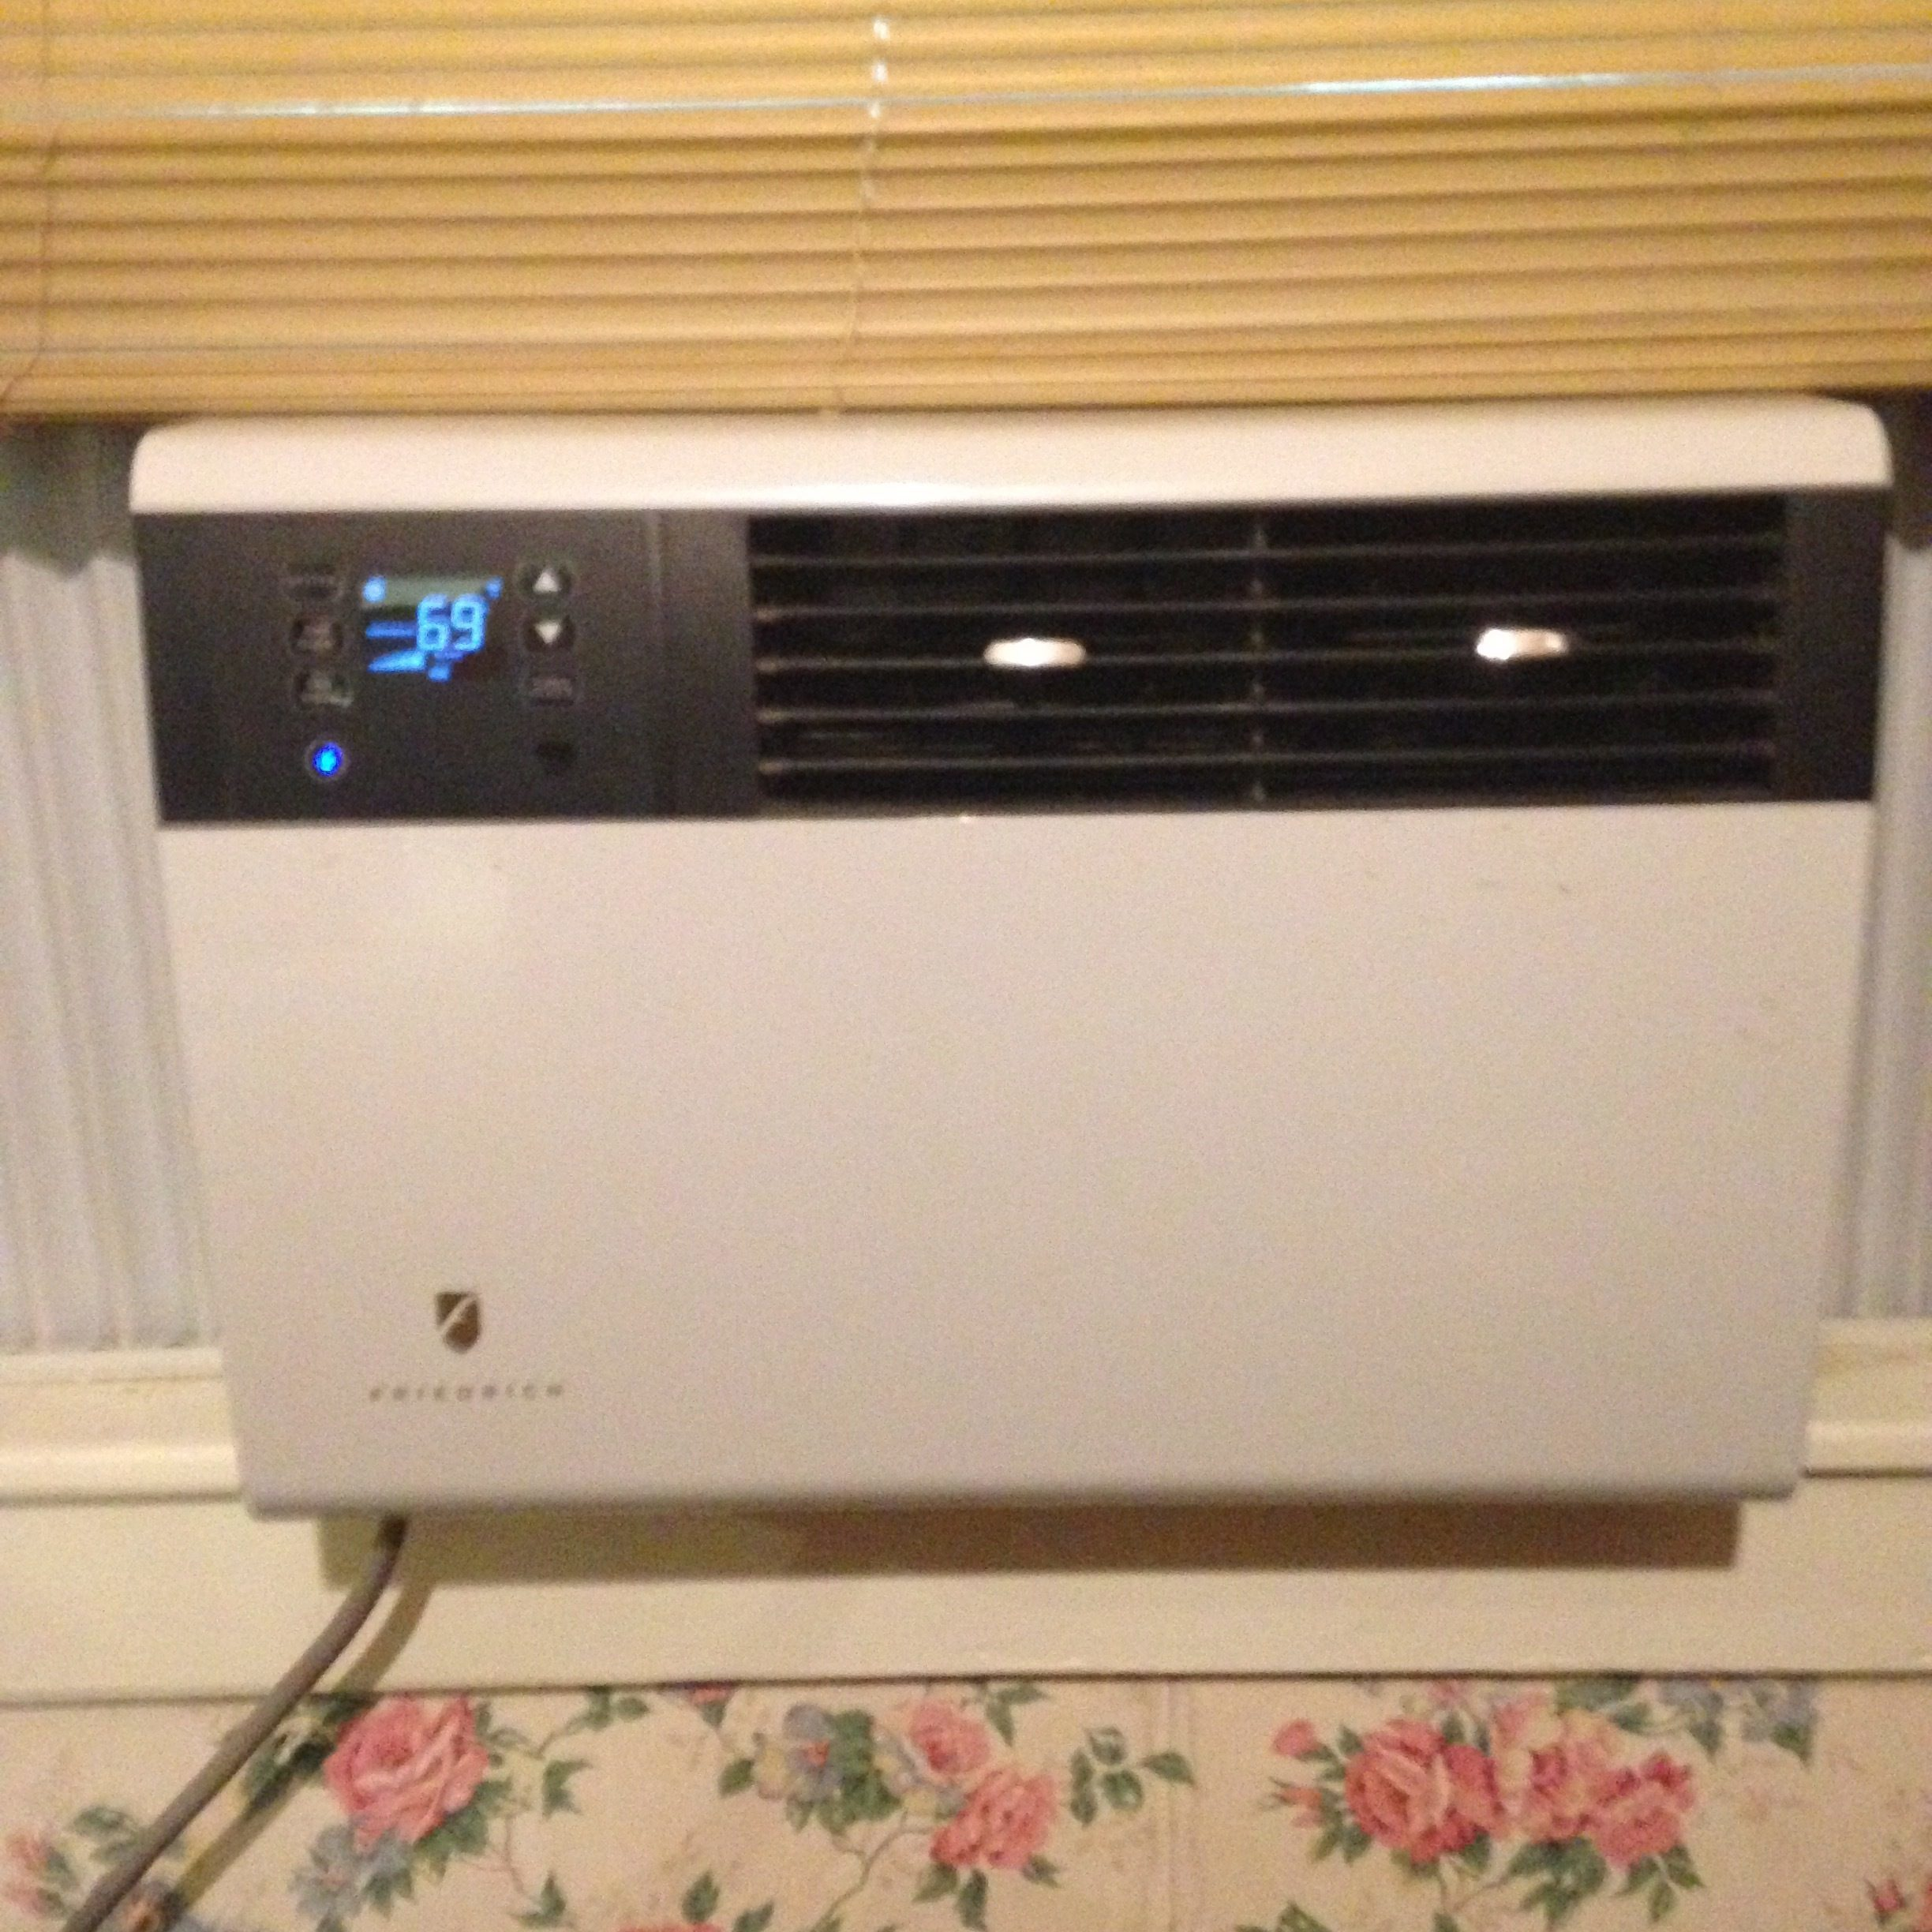 Top 40 Reviews And Complaints About Friedrich Air Conditioner